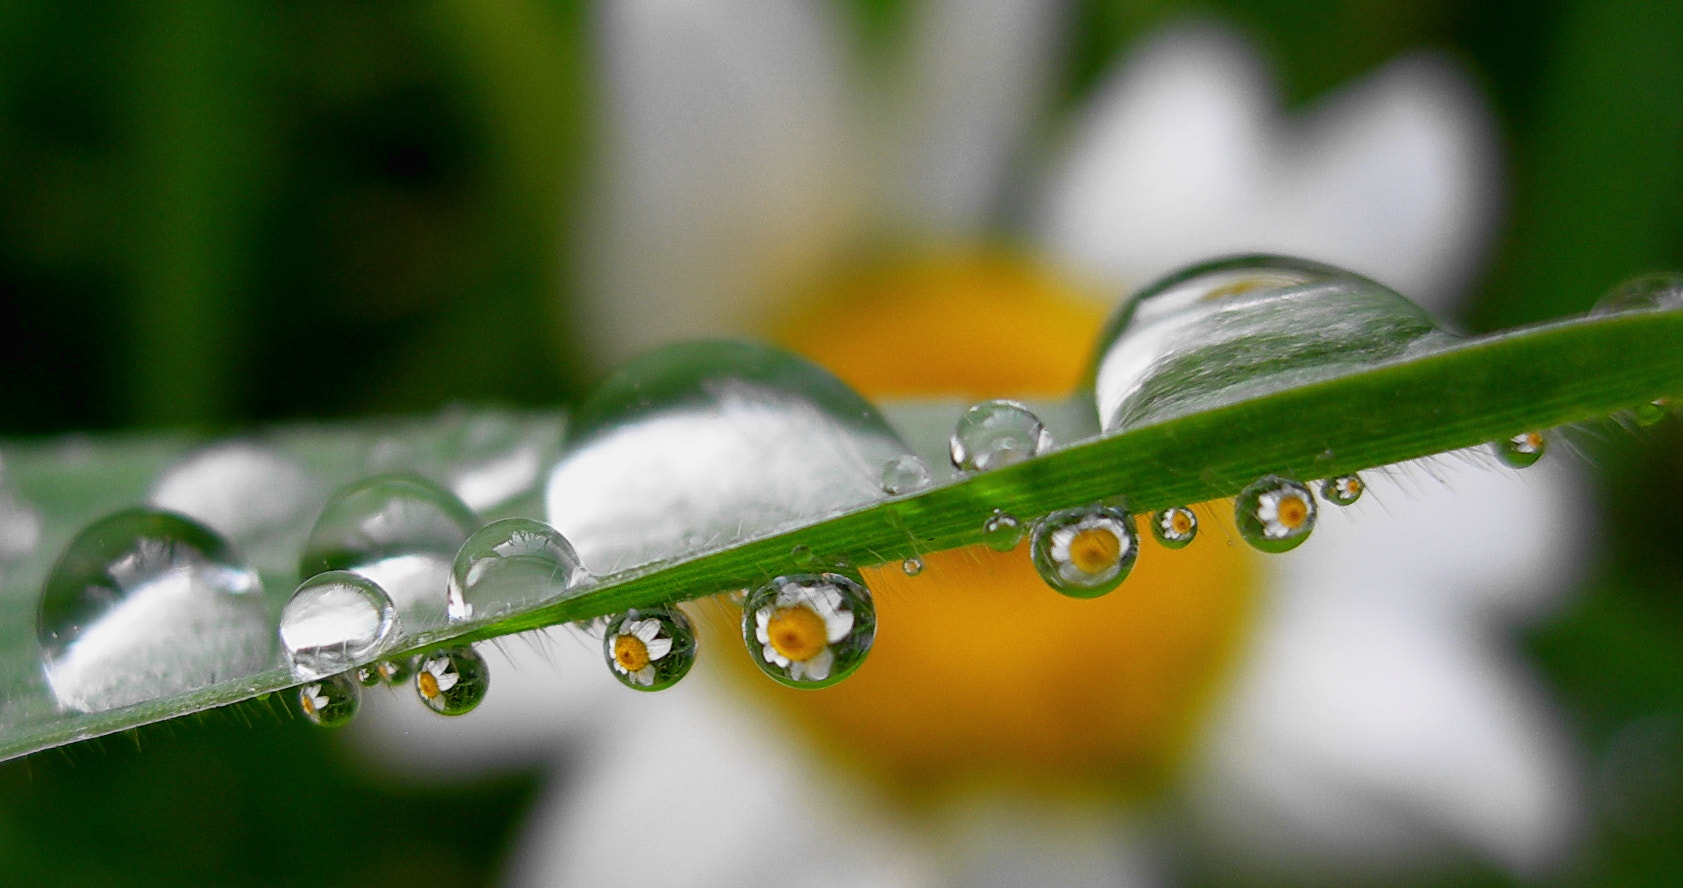 Photograph dew drops by tugba kiper on 500px